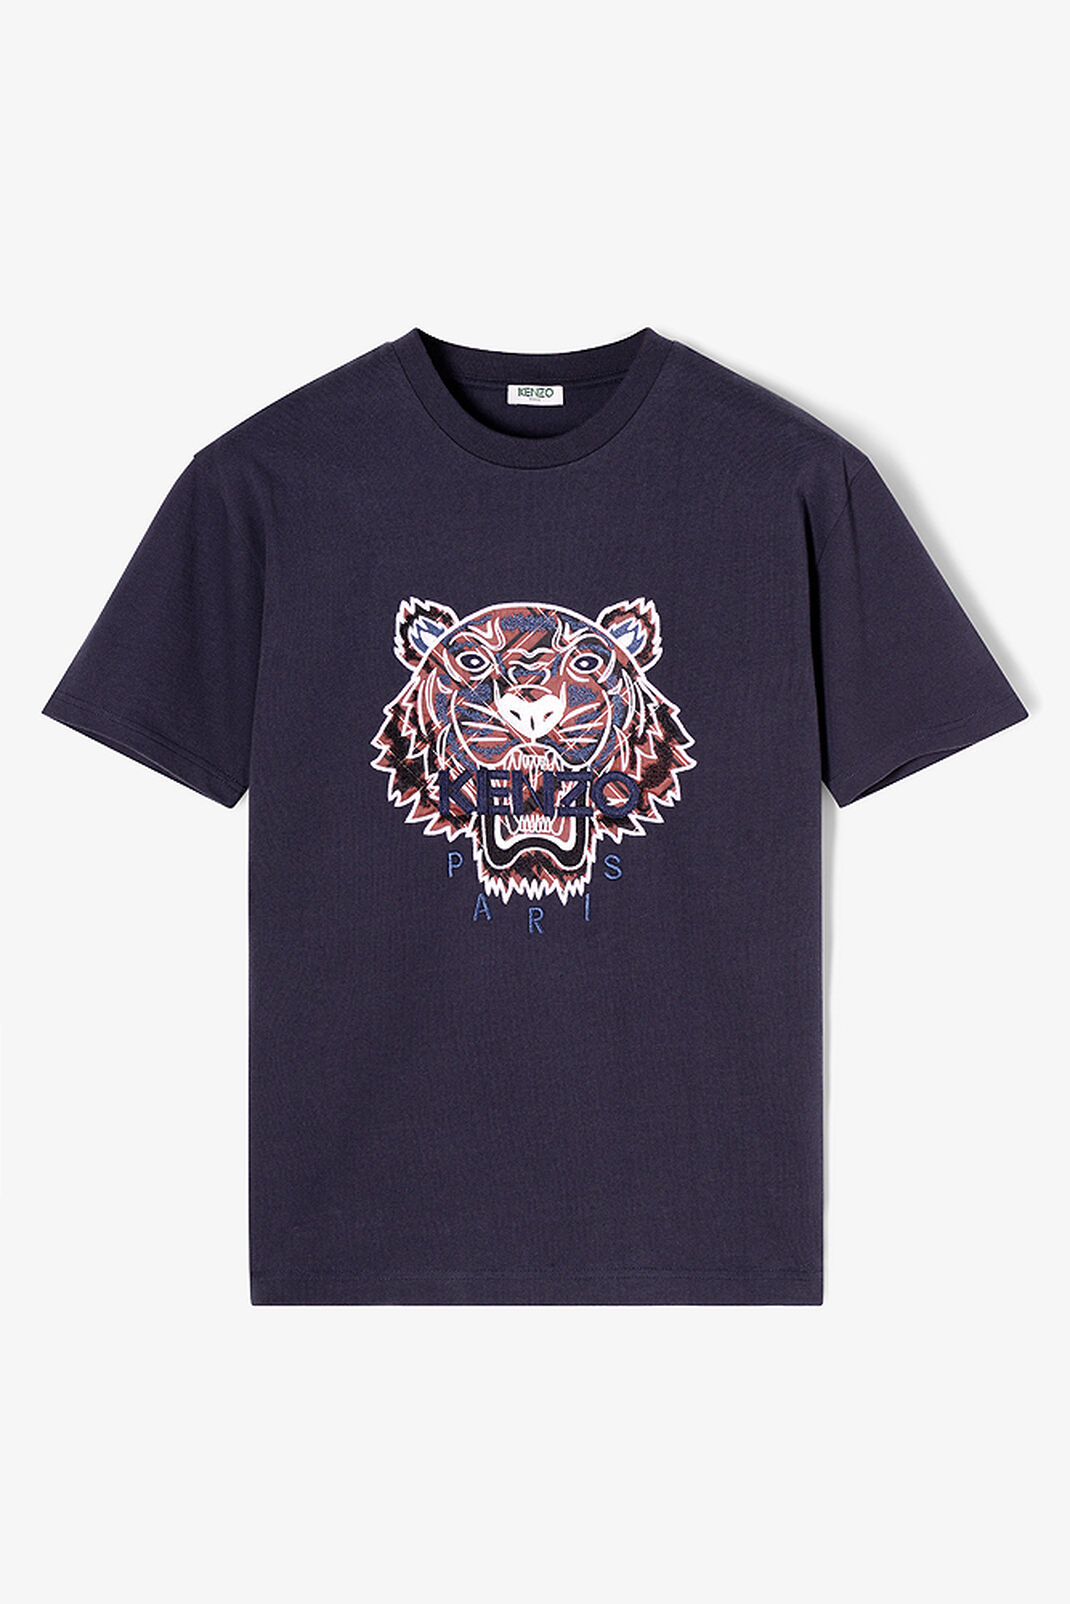 INK Frame Check' x Tiger T-shirt for men KENZO